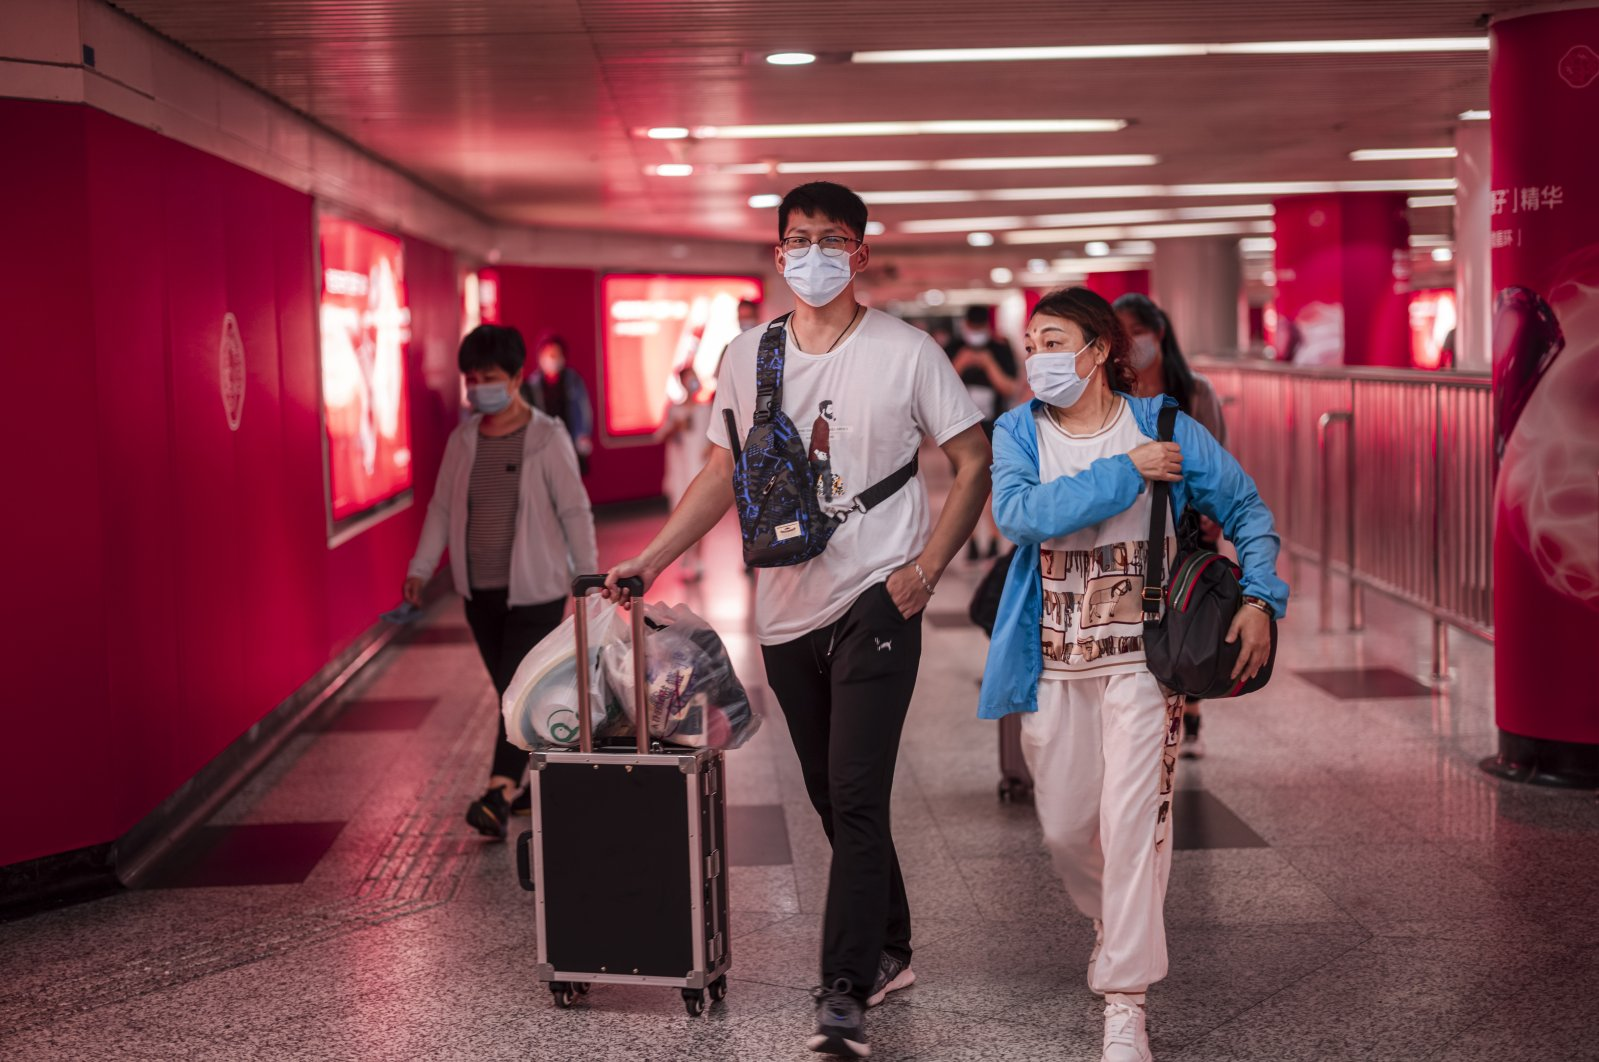 People enter form the subway station to the Pudong International Airport in Shanghai, China, Aug. 22, 2021. (EPA Photo)